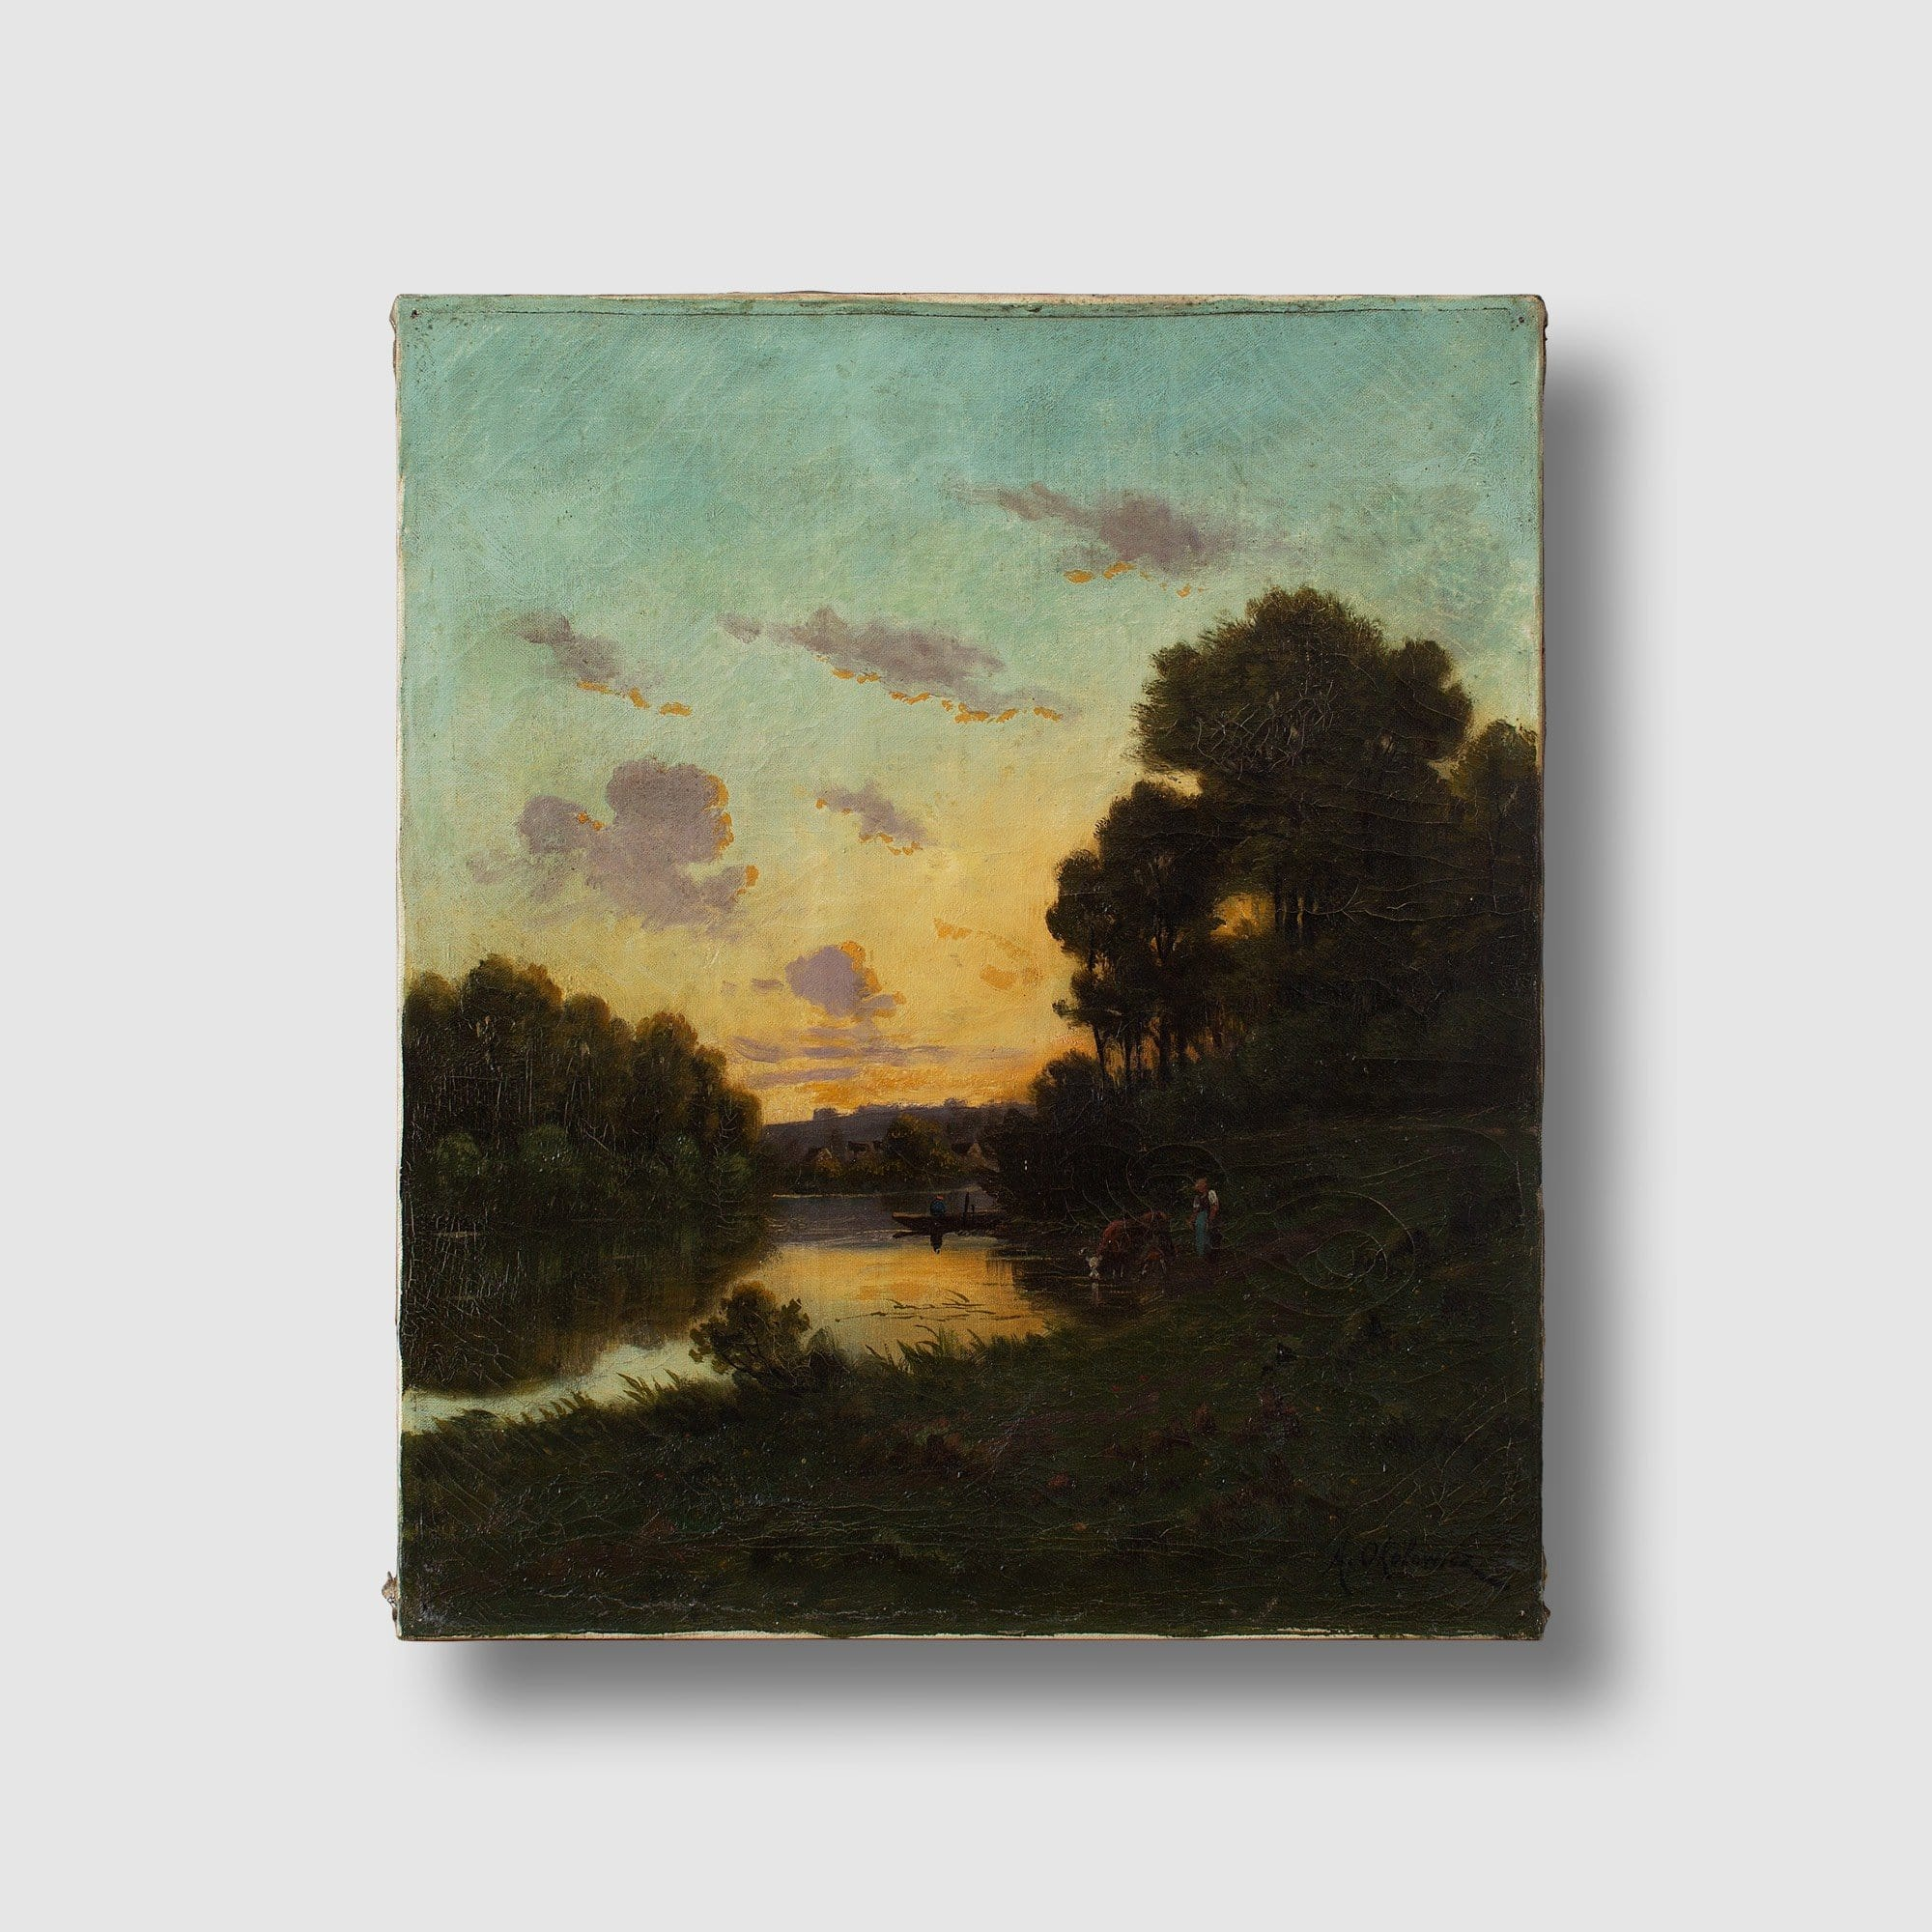 Nicolaï Alexandovitch Okolowicz, River Landscape With Sunset, Fisherman & Cattle